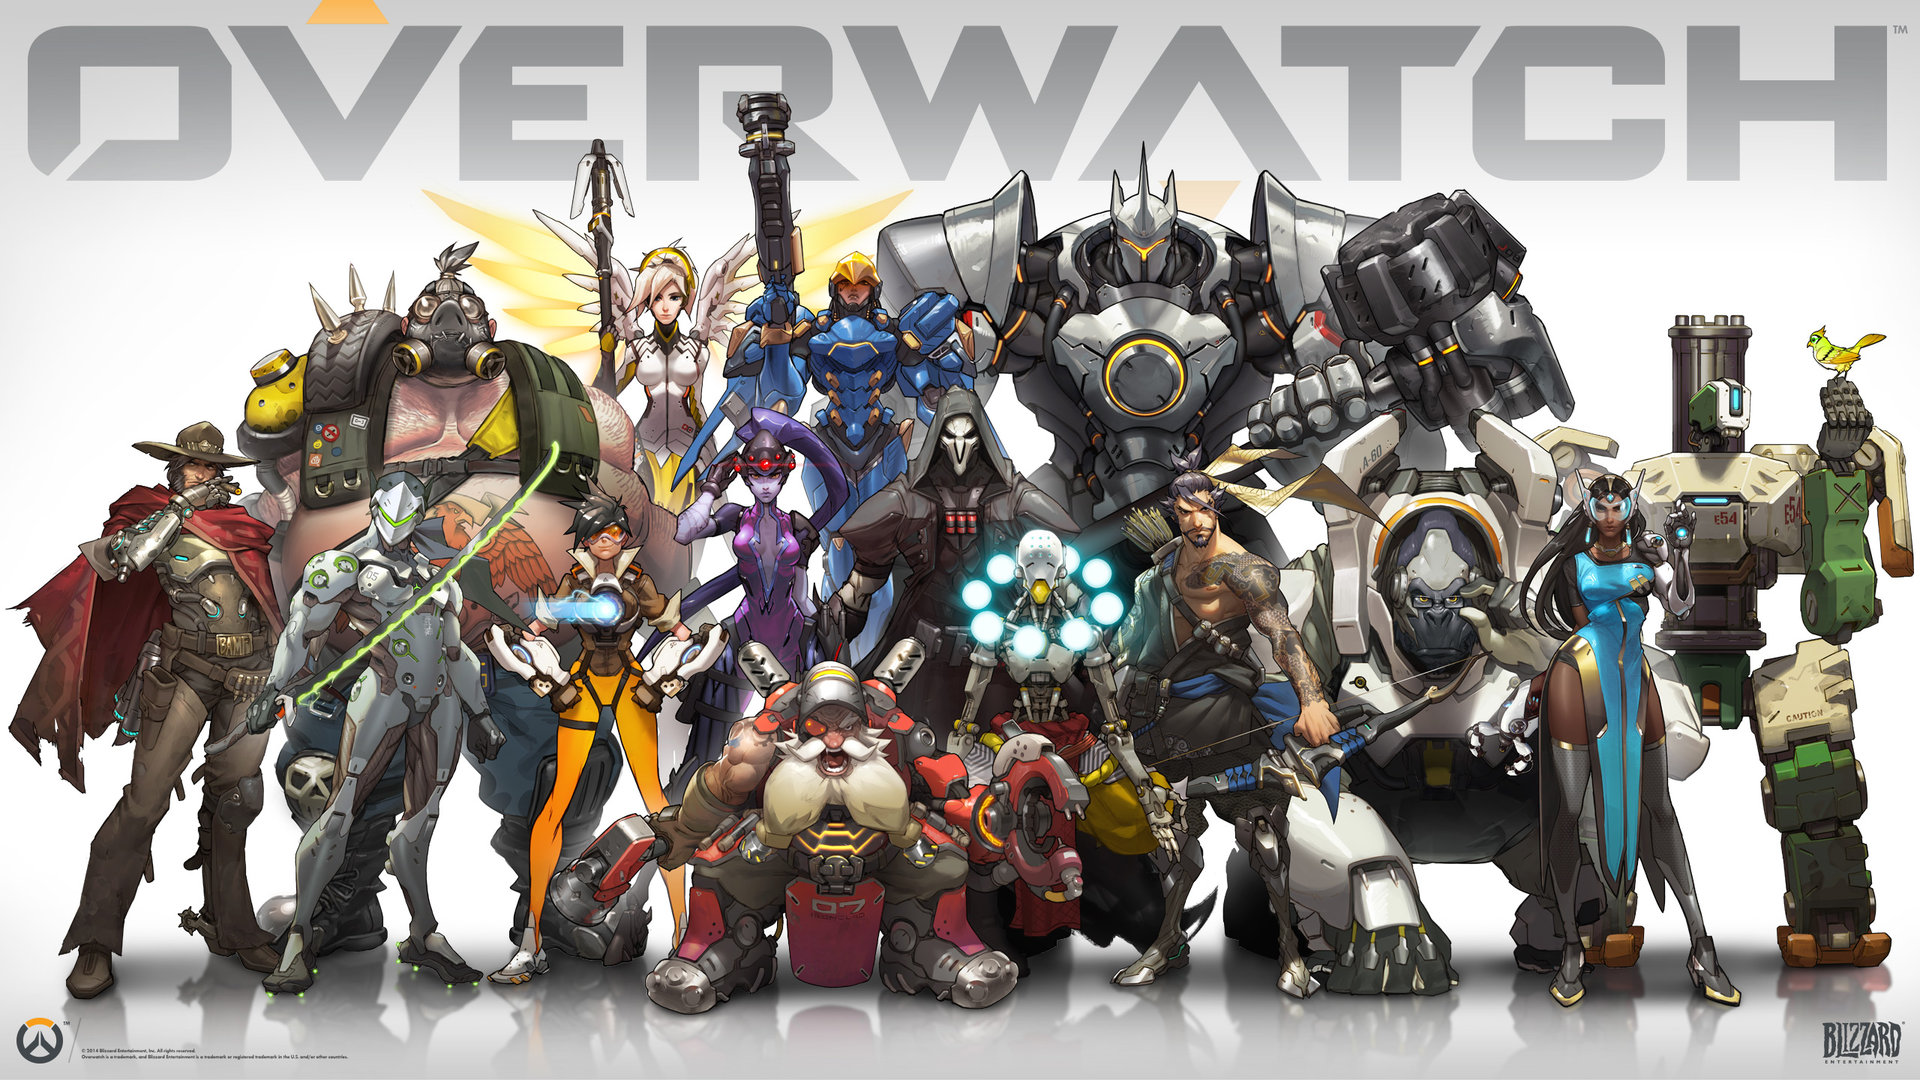 The Blizzcon 2014 announcement lineup poster